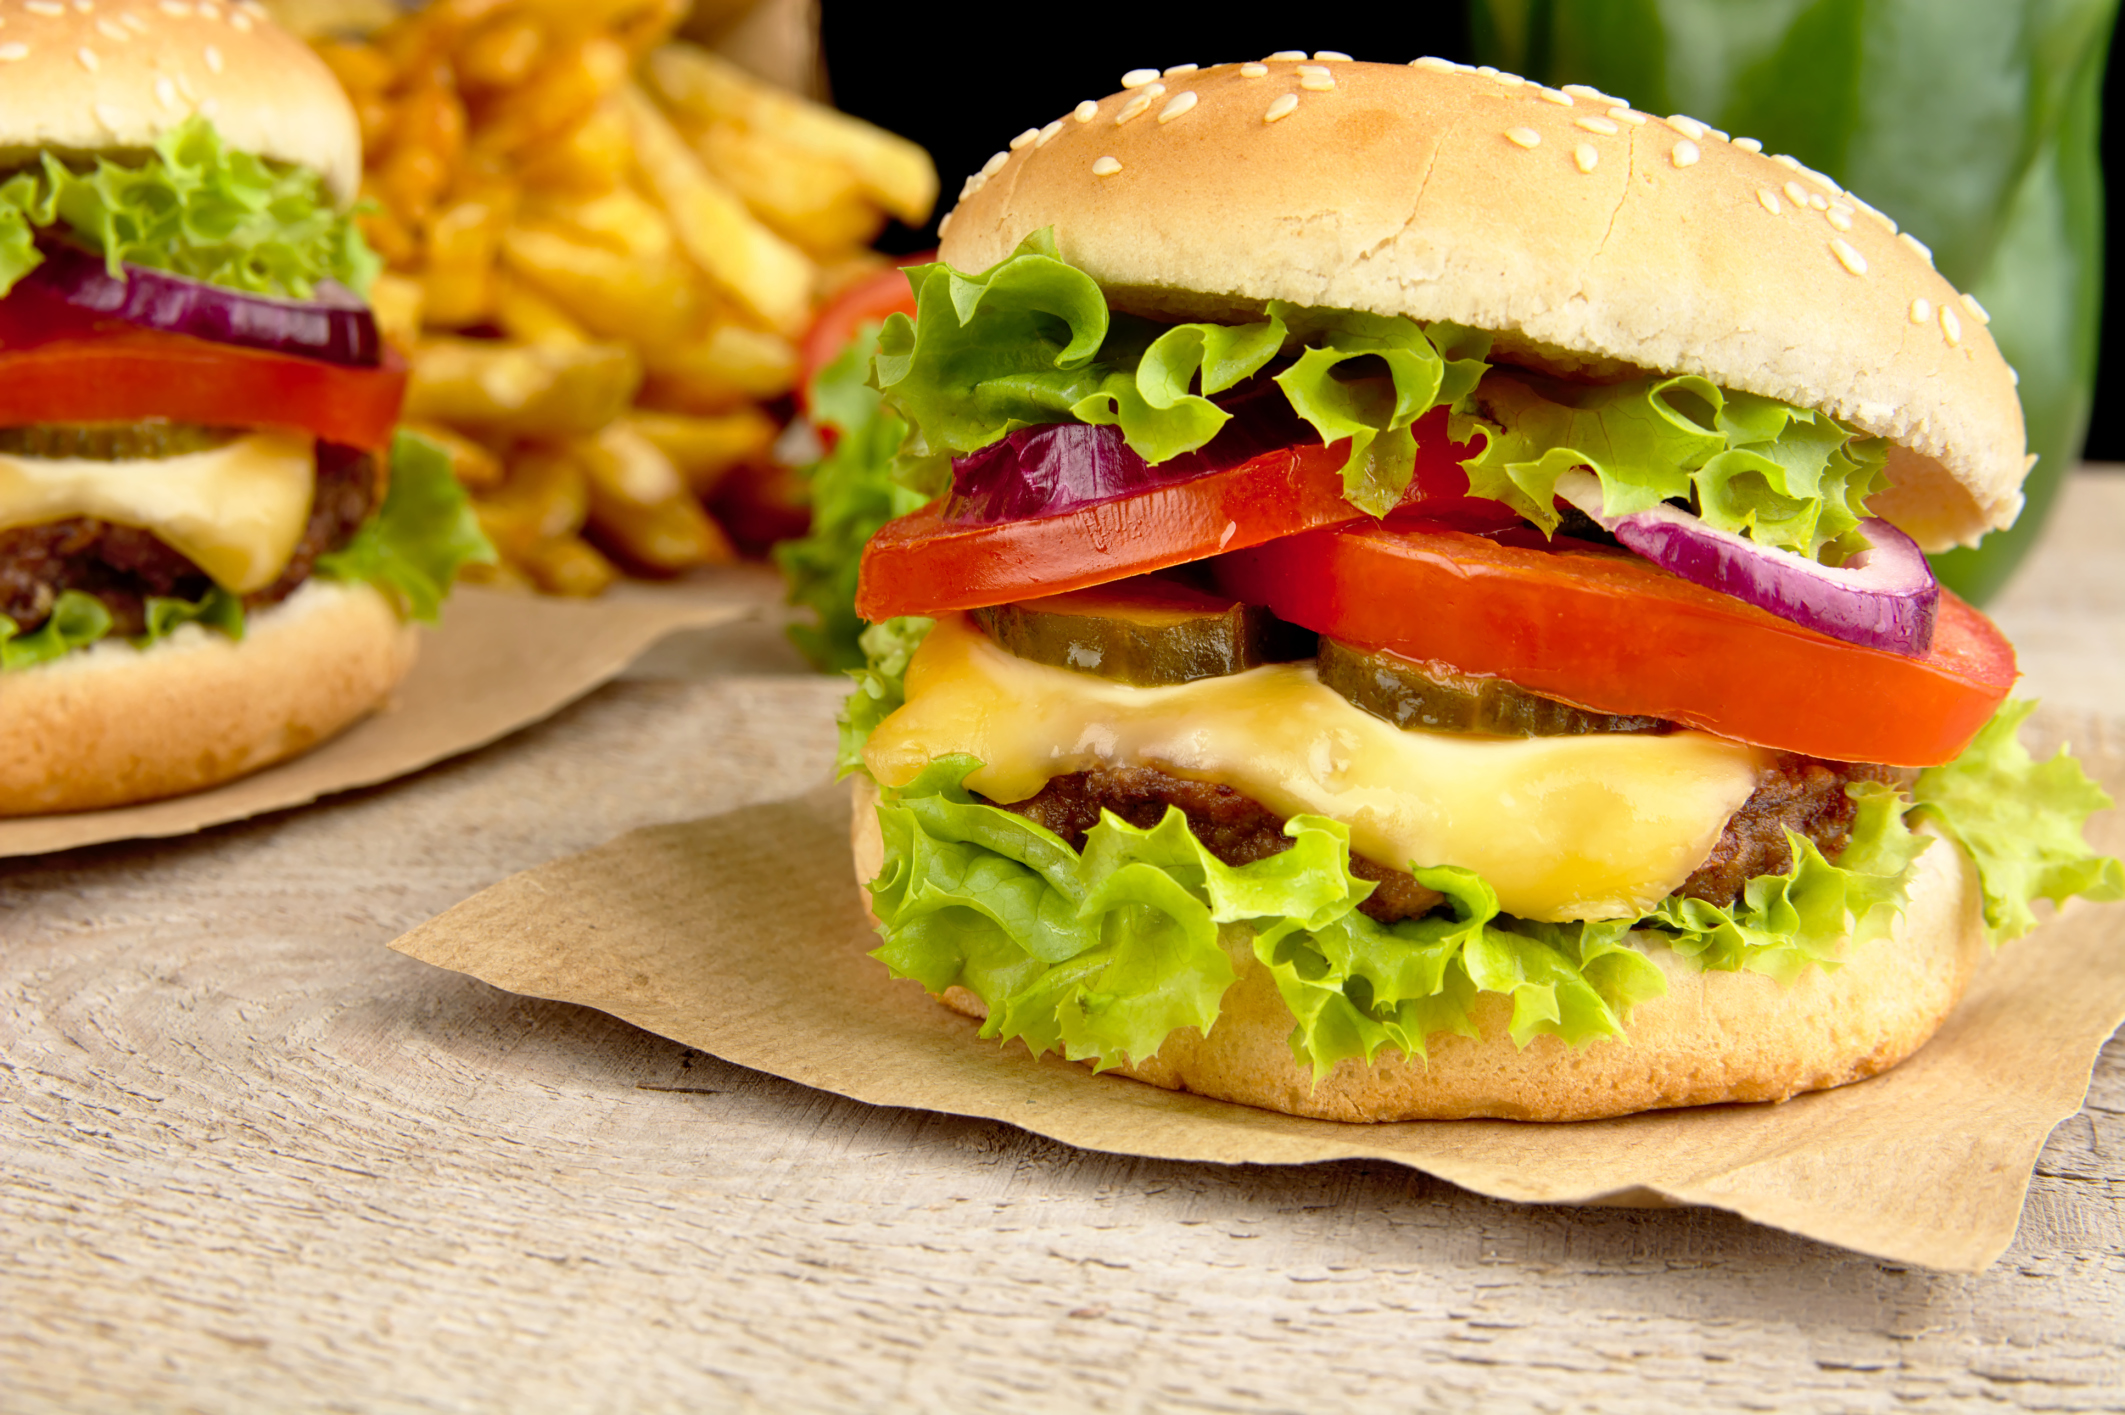 research paper about minute burger 150 words per minute master review in research paper year burger king essays on quickly persons research paper reihen analysis.